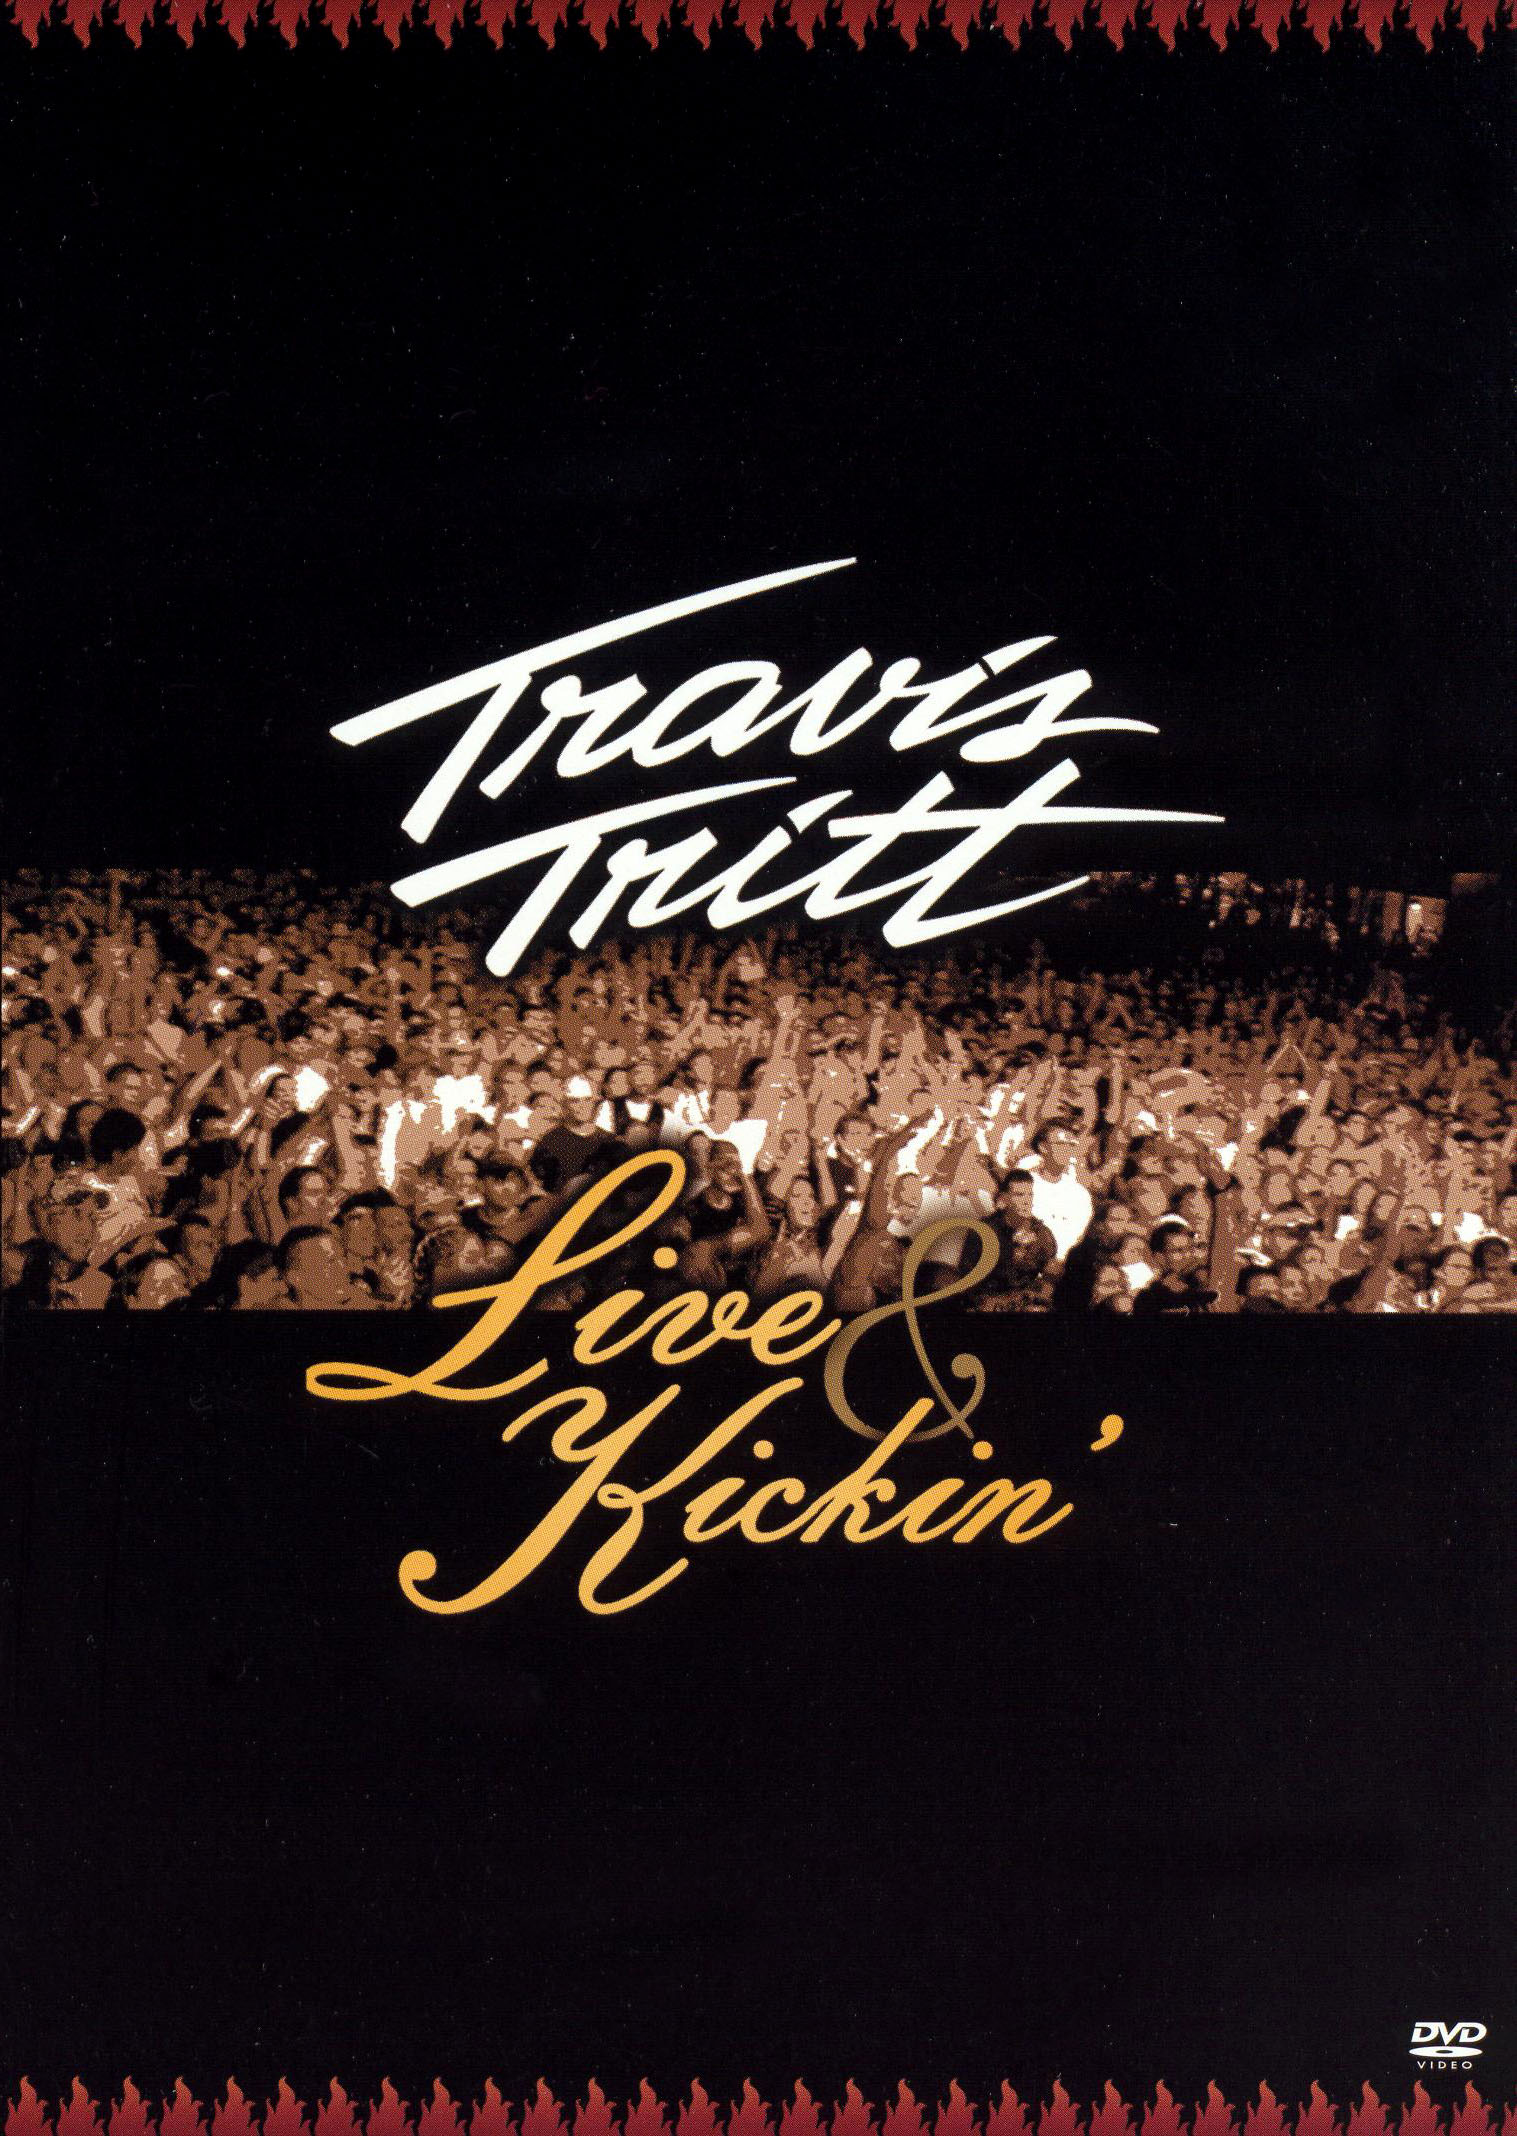 Travis Tritt: Live and Kickin'